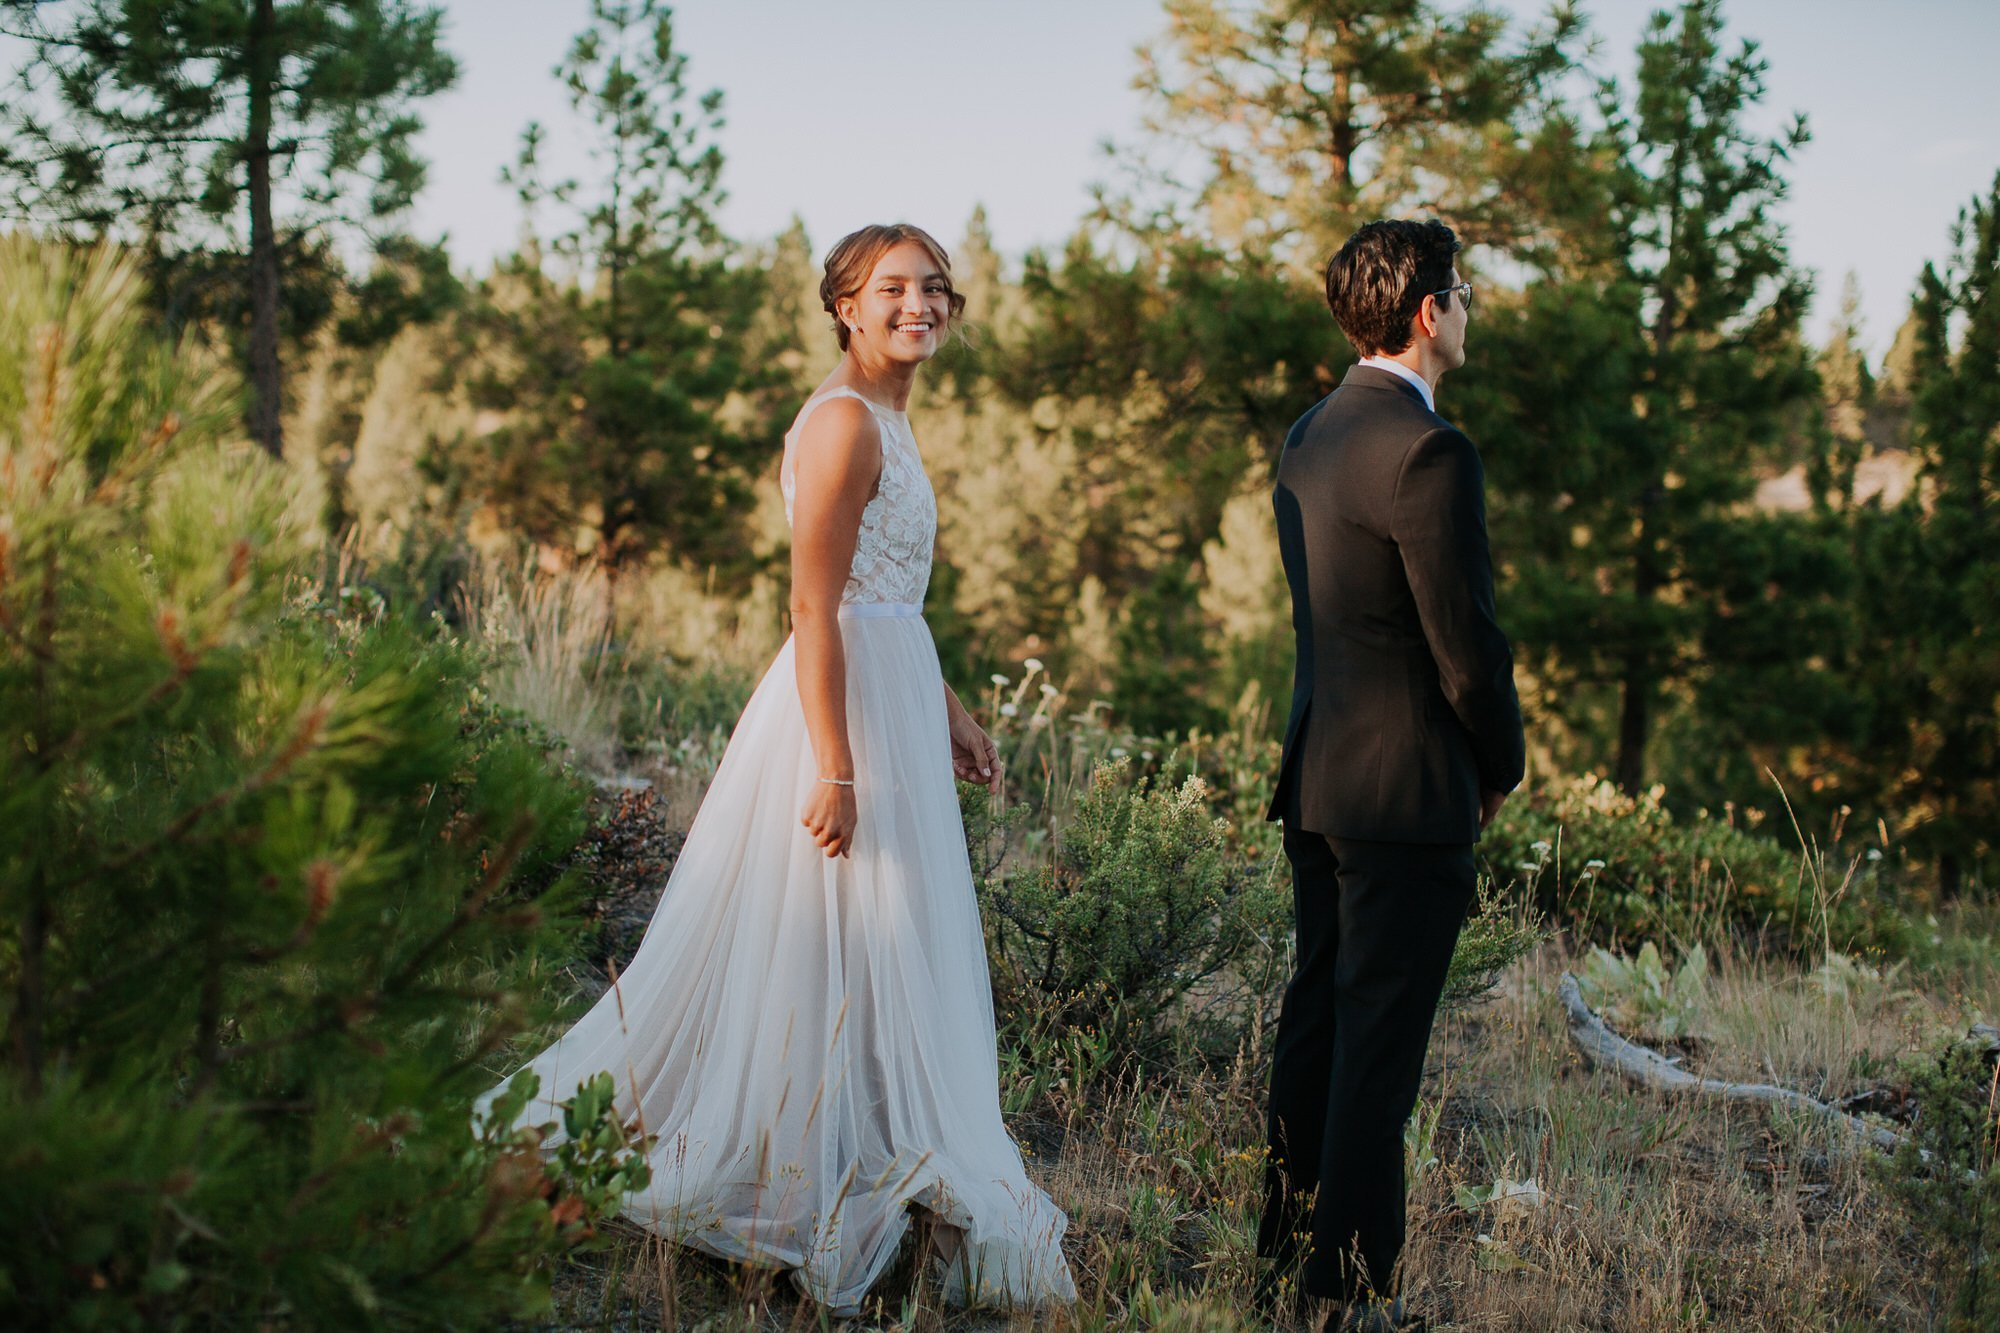 First look moment during elopement in Washington